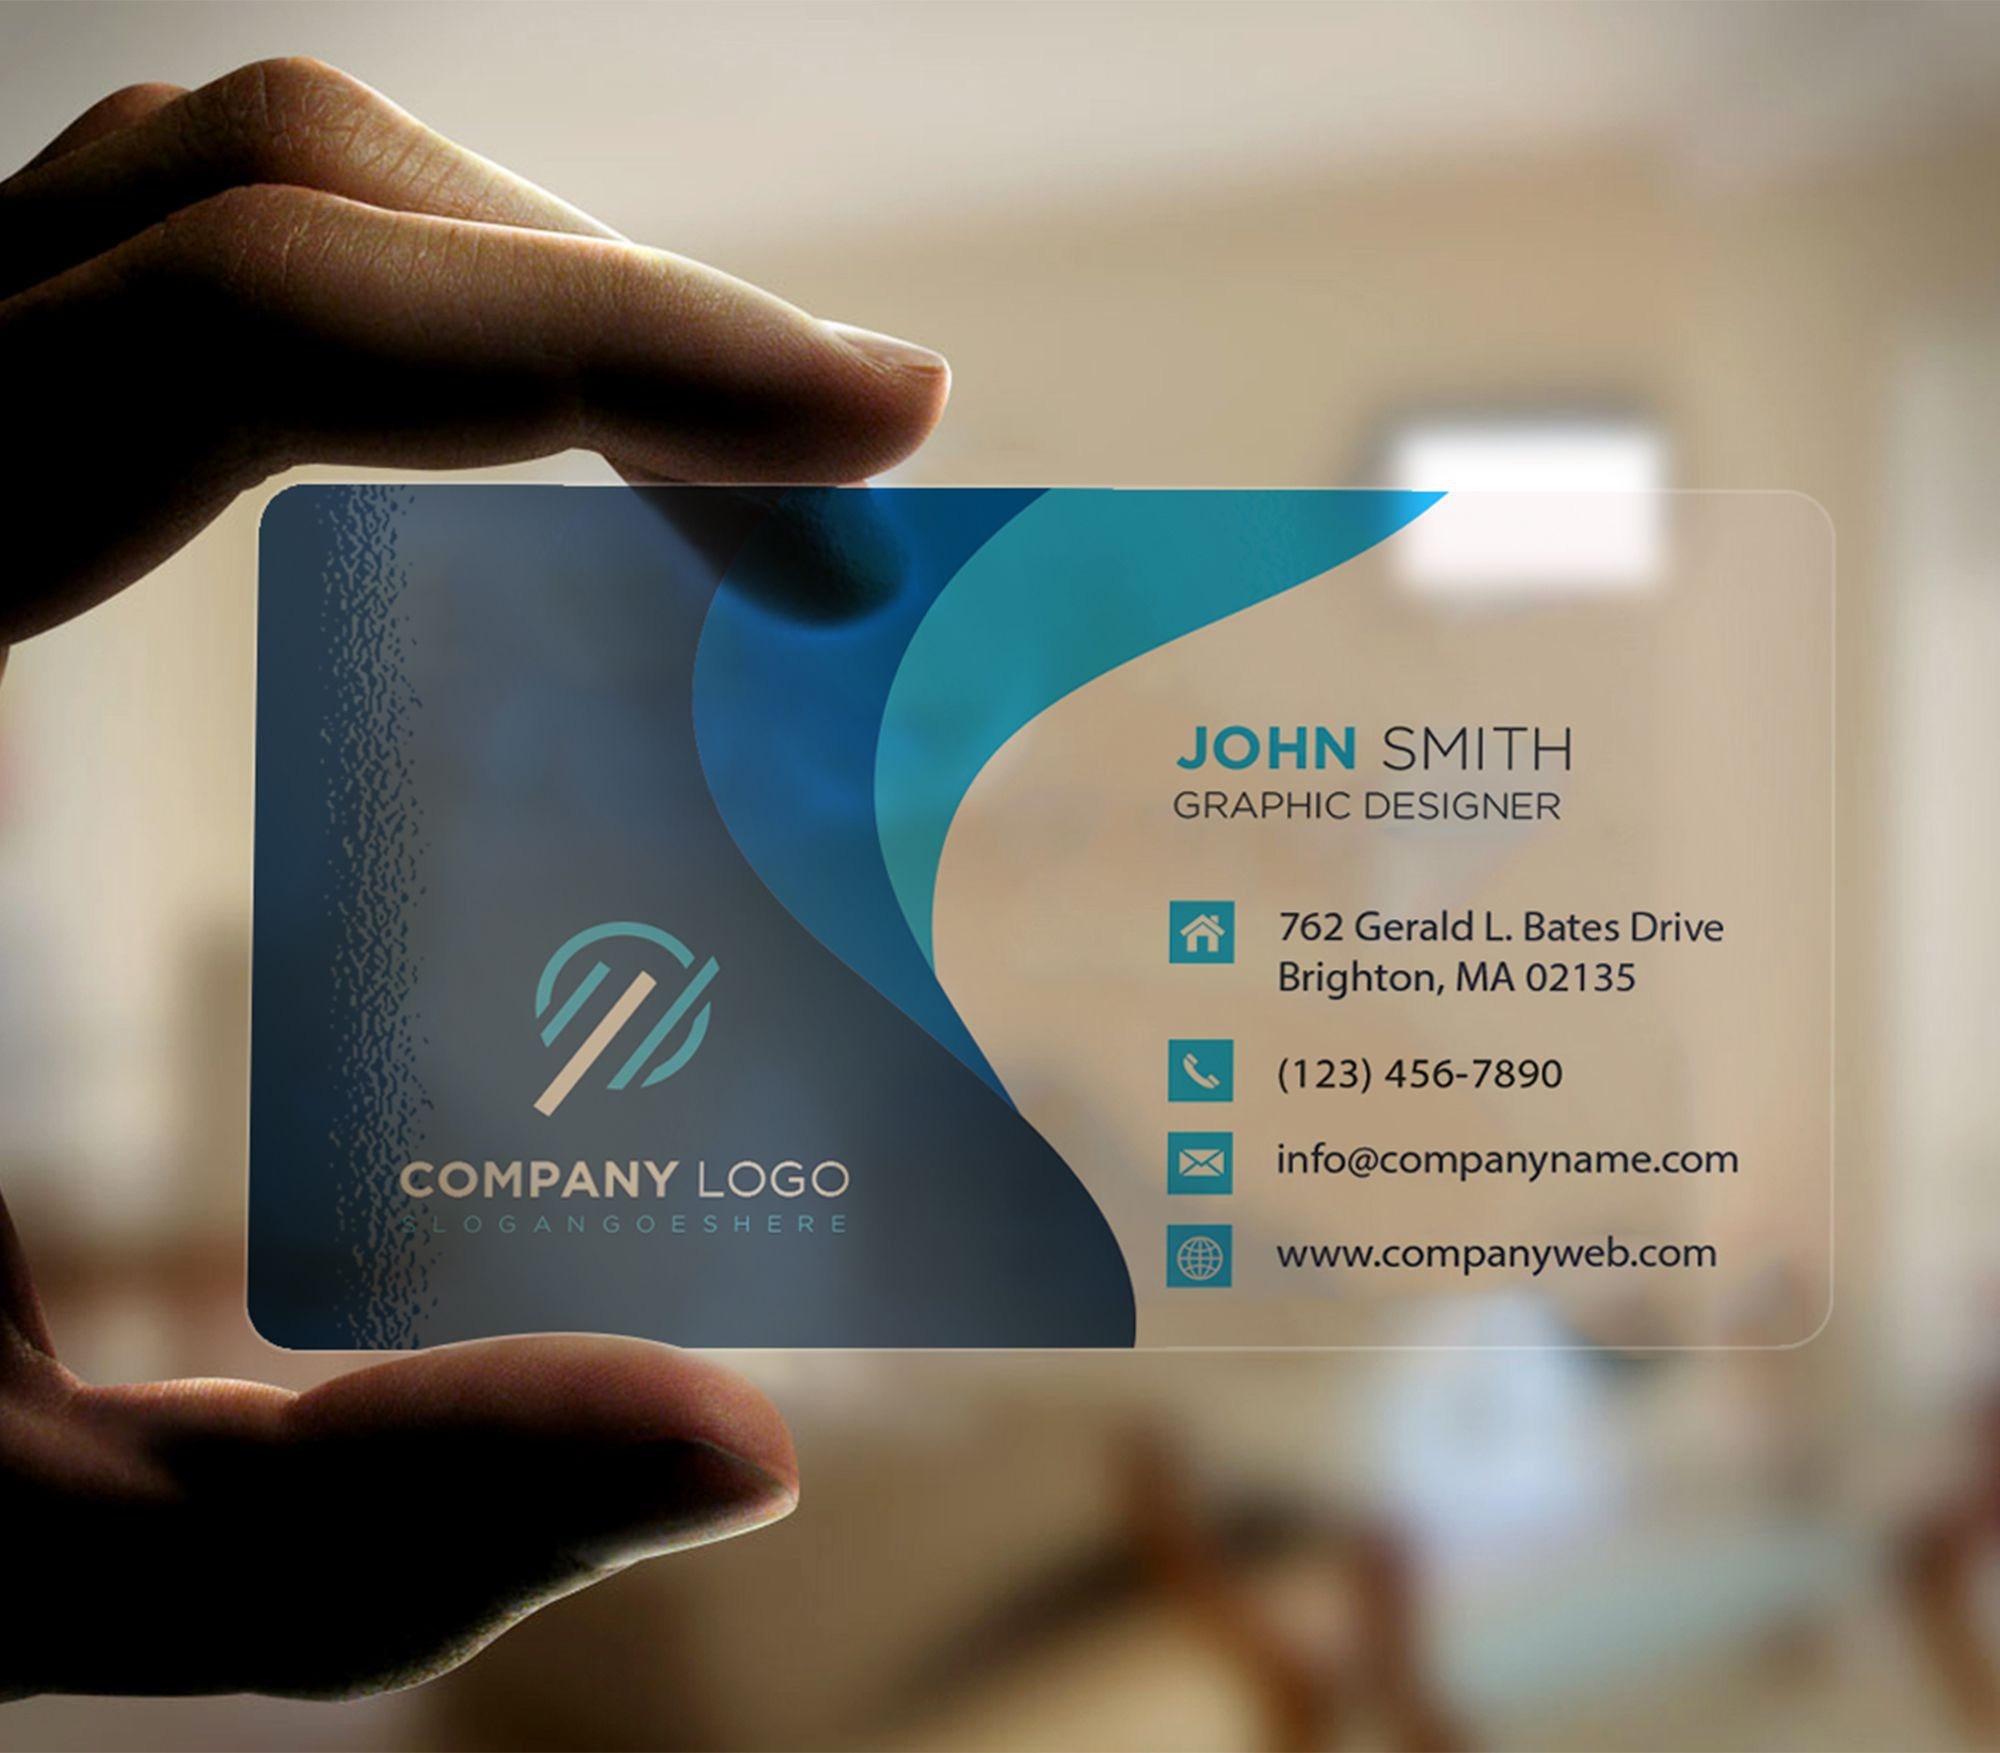 Tripti5248 I Will Design Transparent Business Card Within 12 Hours For 10 On Fiverr Com Graphic Design Business Card Transparent Business Cards Doctor Business Cards